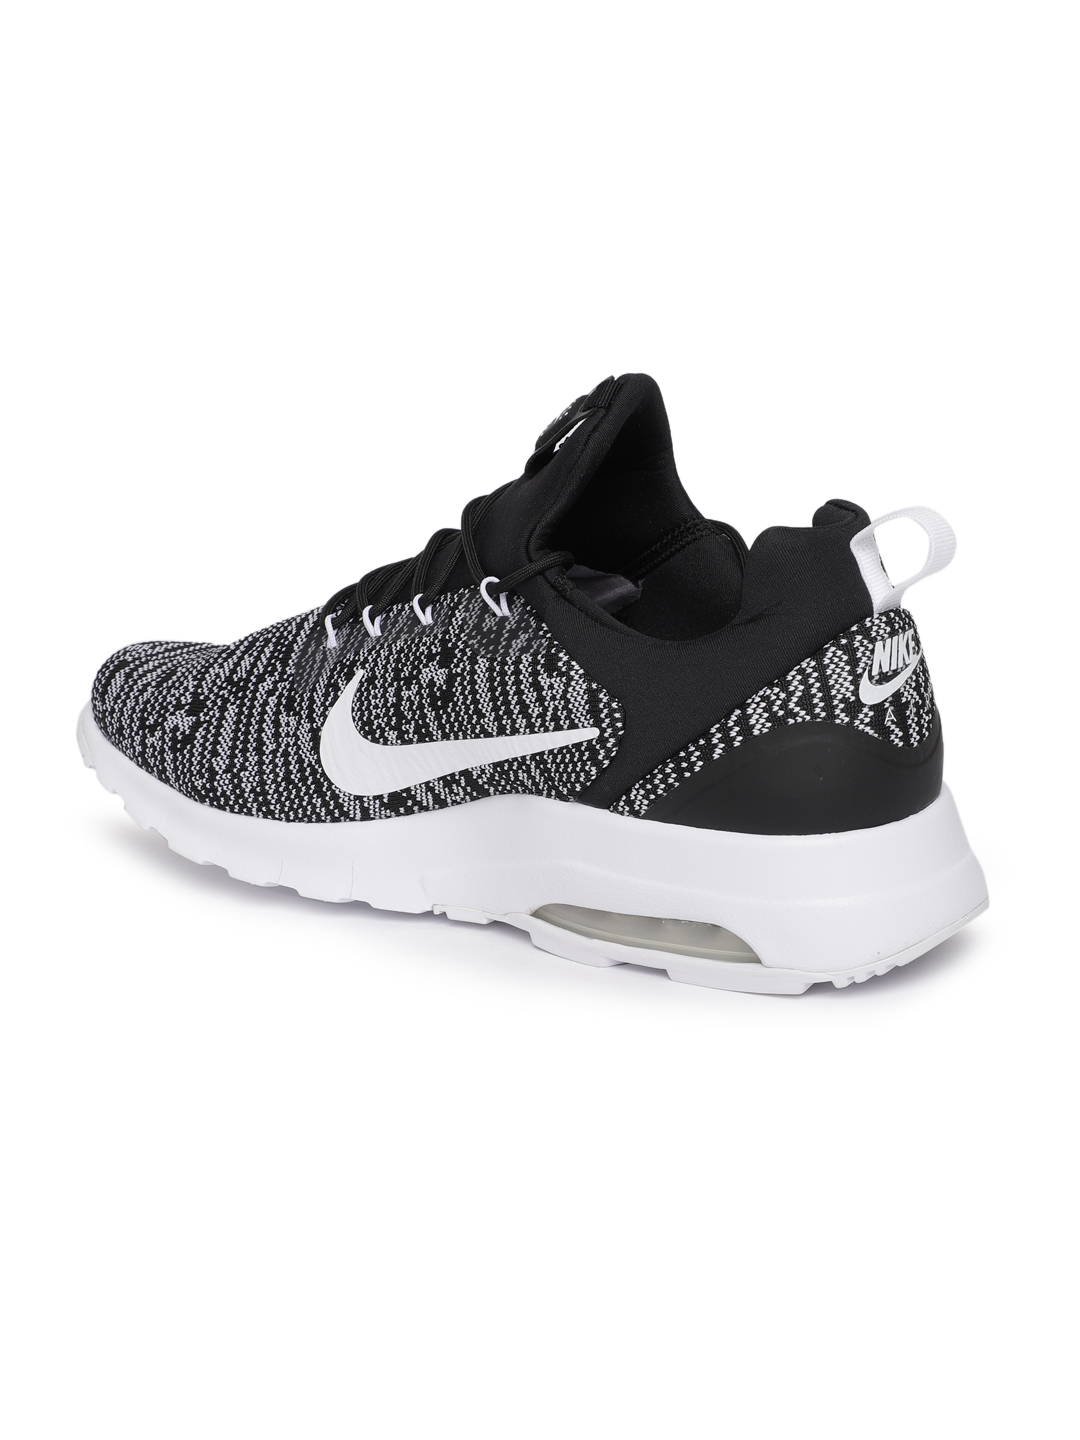 c9ddfb4ad5 Buy Nike Men Black & White Air Max Motion Racer Sneakers - Casual ...